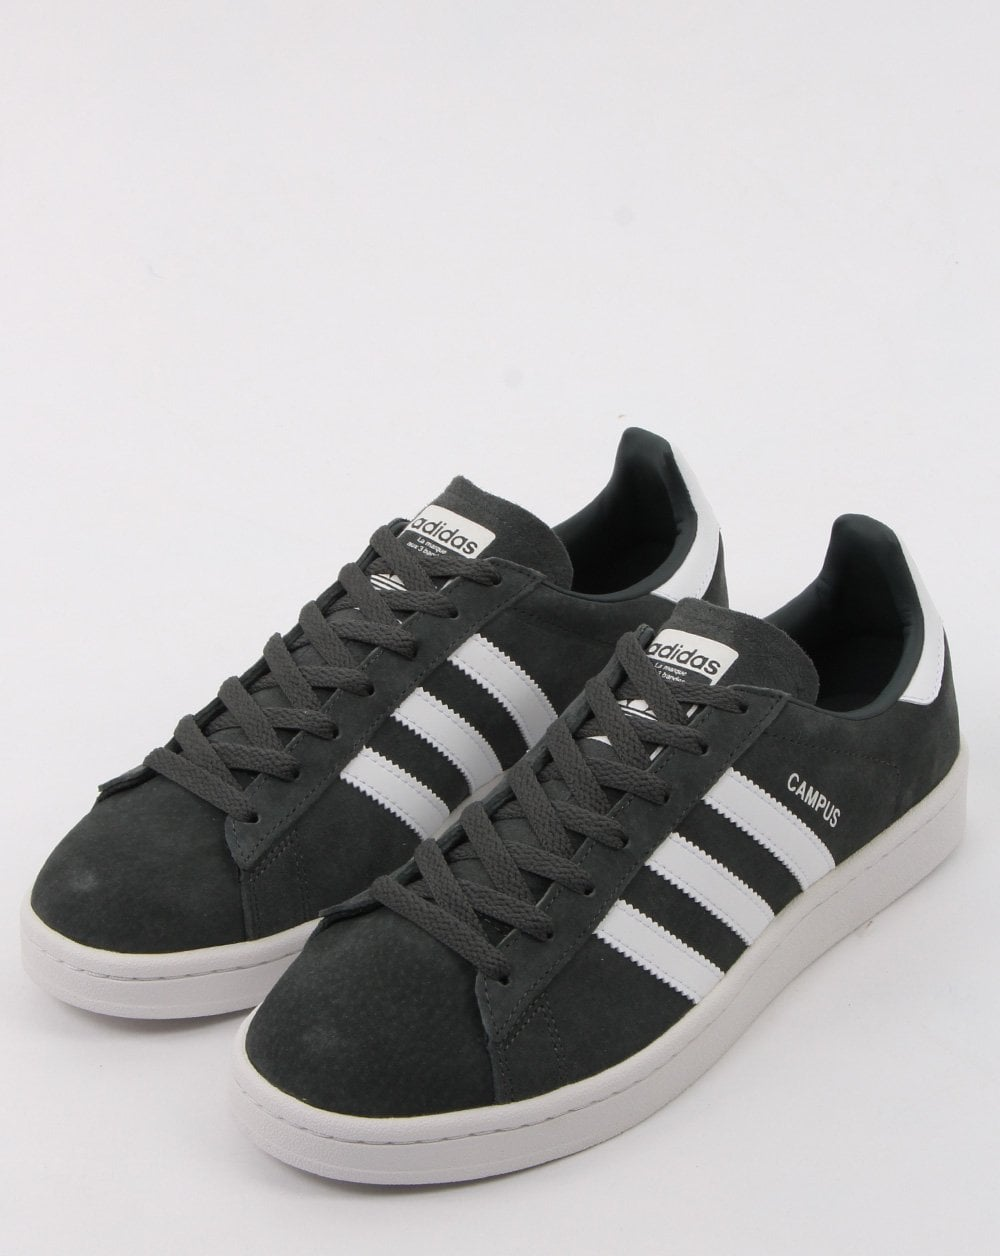 dfd7c6d6cf7d2b Adidas Campus Trainers in Legend Ivy and White